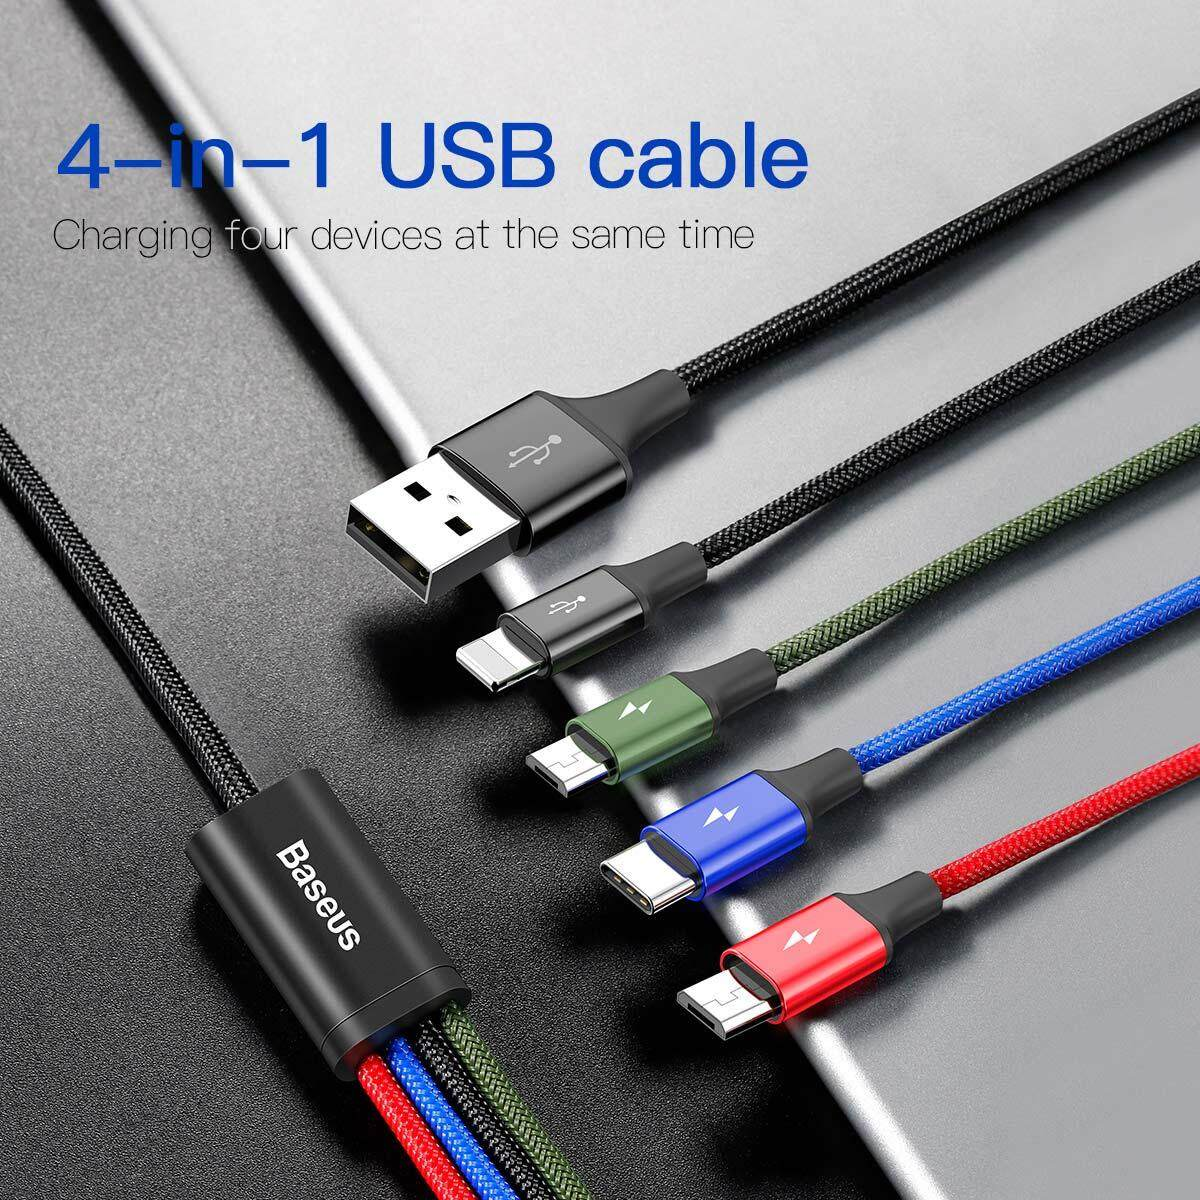 Baseus Phone Accessories Philippines Cellphone Usb Cable Wiring Diagram Together With Of Ipad Fast 35a 12m Lightning 8 Pin Type C Dual Micro